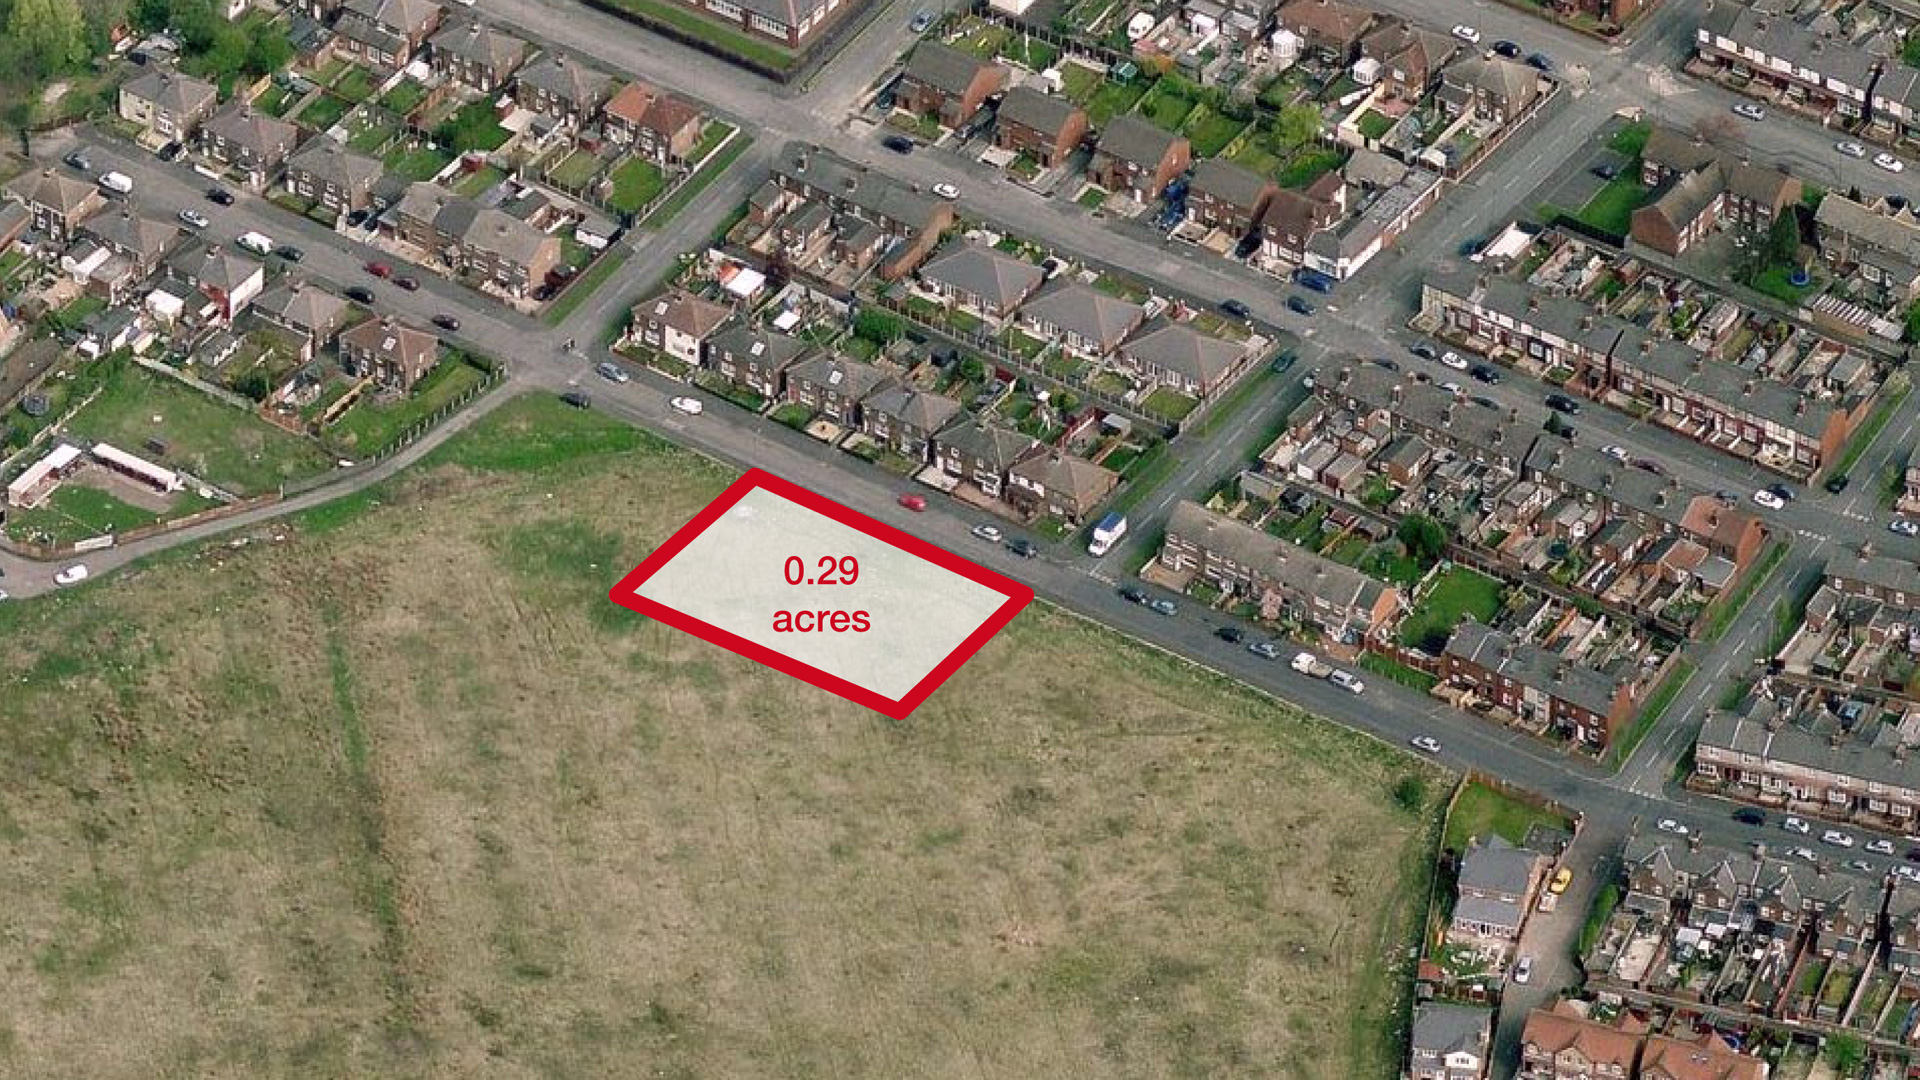 Land for sale in St Helens